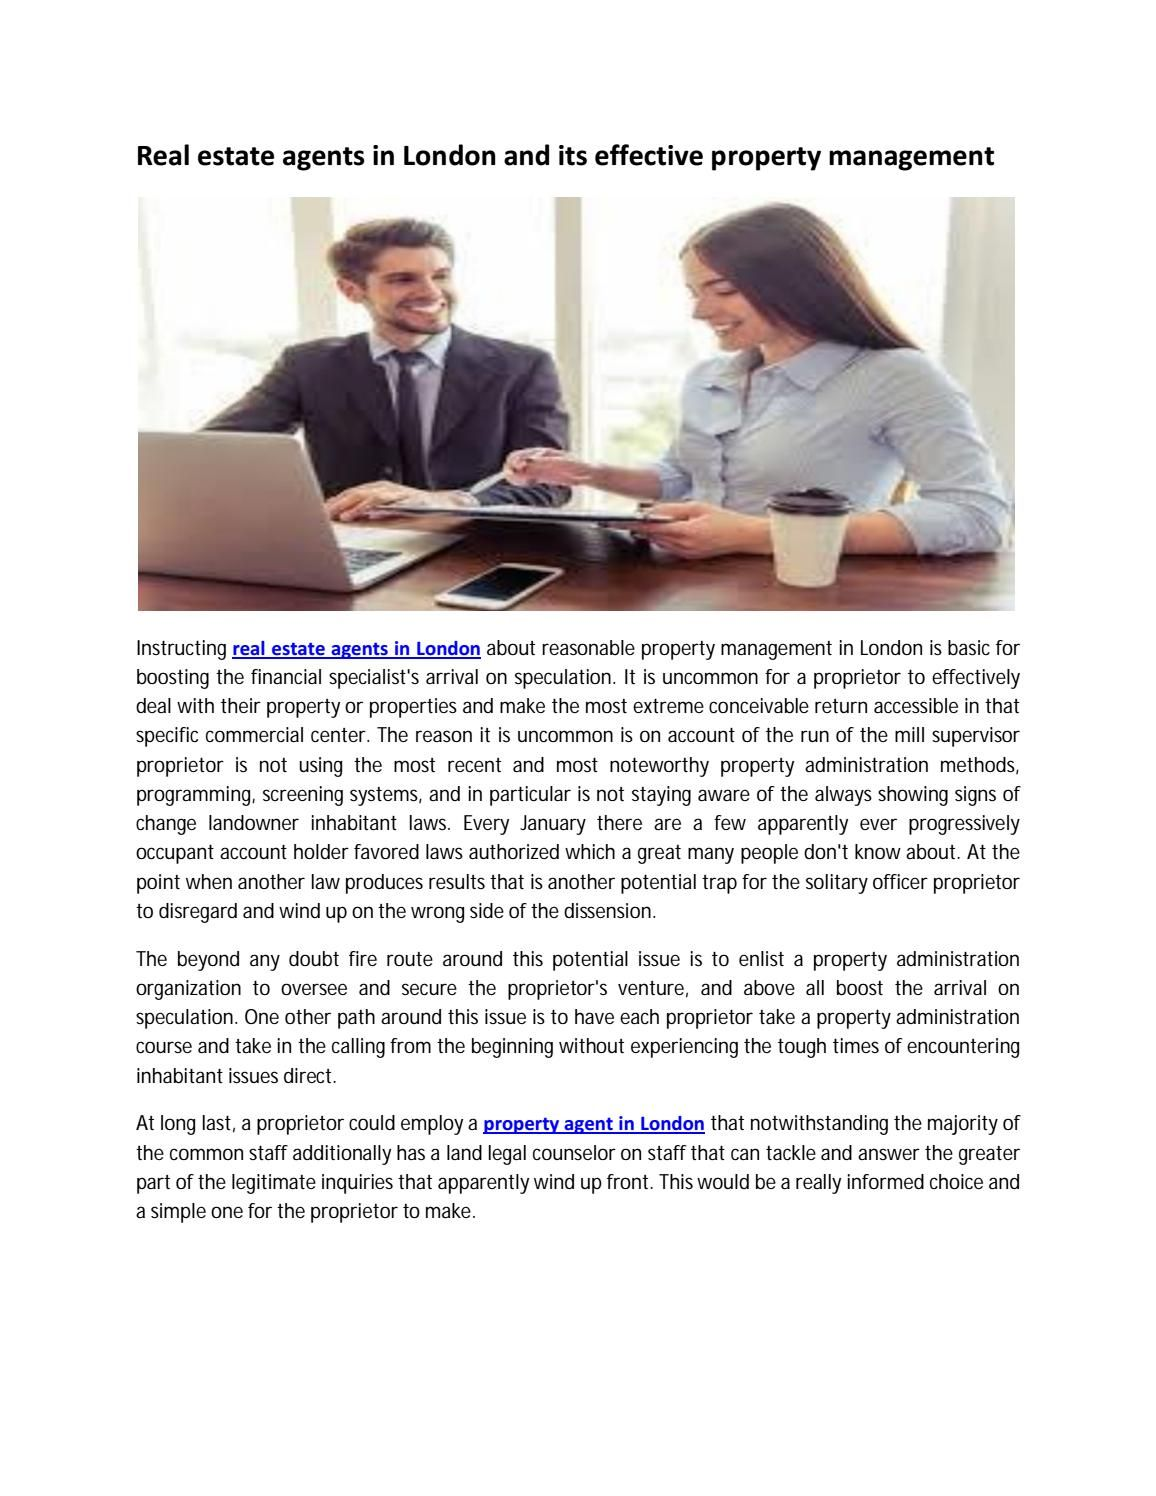 Real Estate Agents In London And Its Effective Property Management Real Estate Agent Property Management Being A Landlord